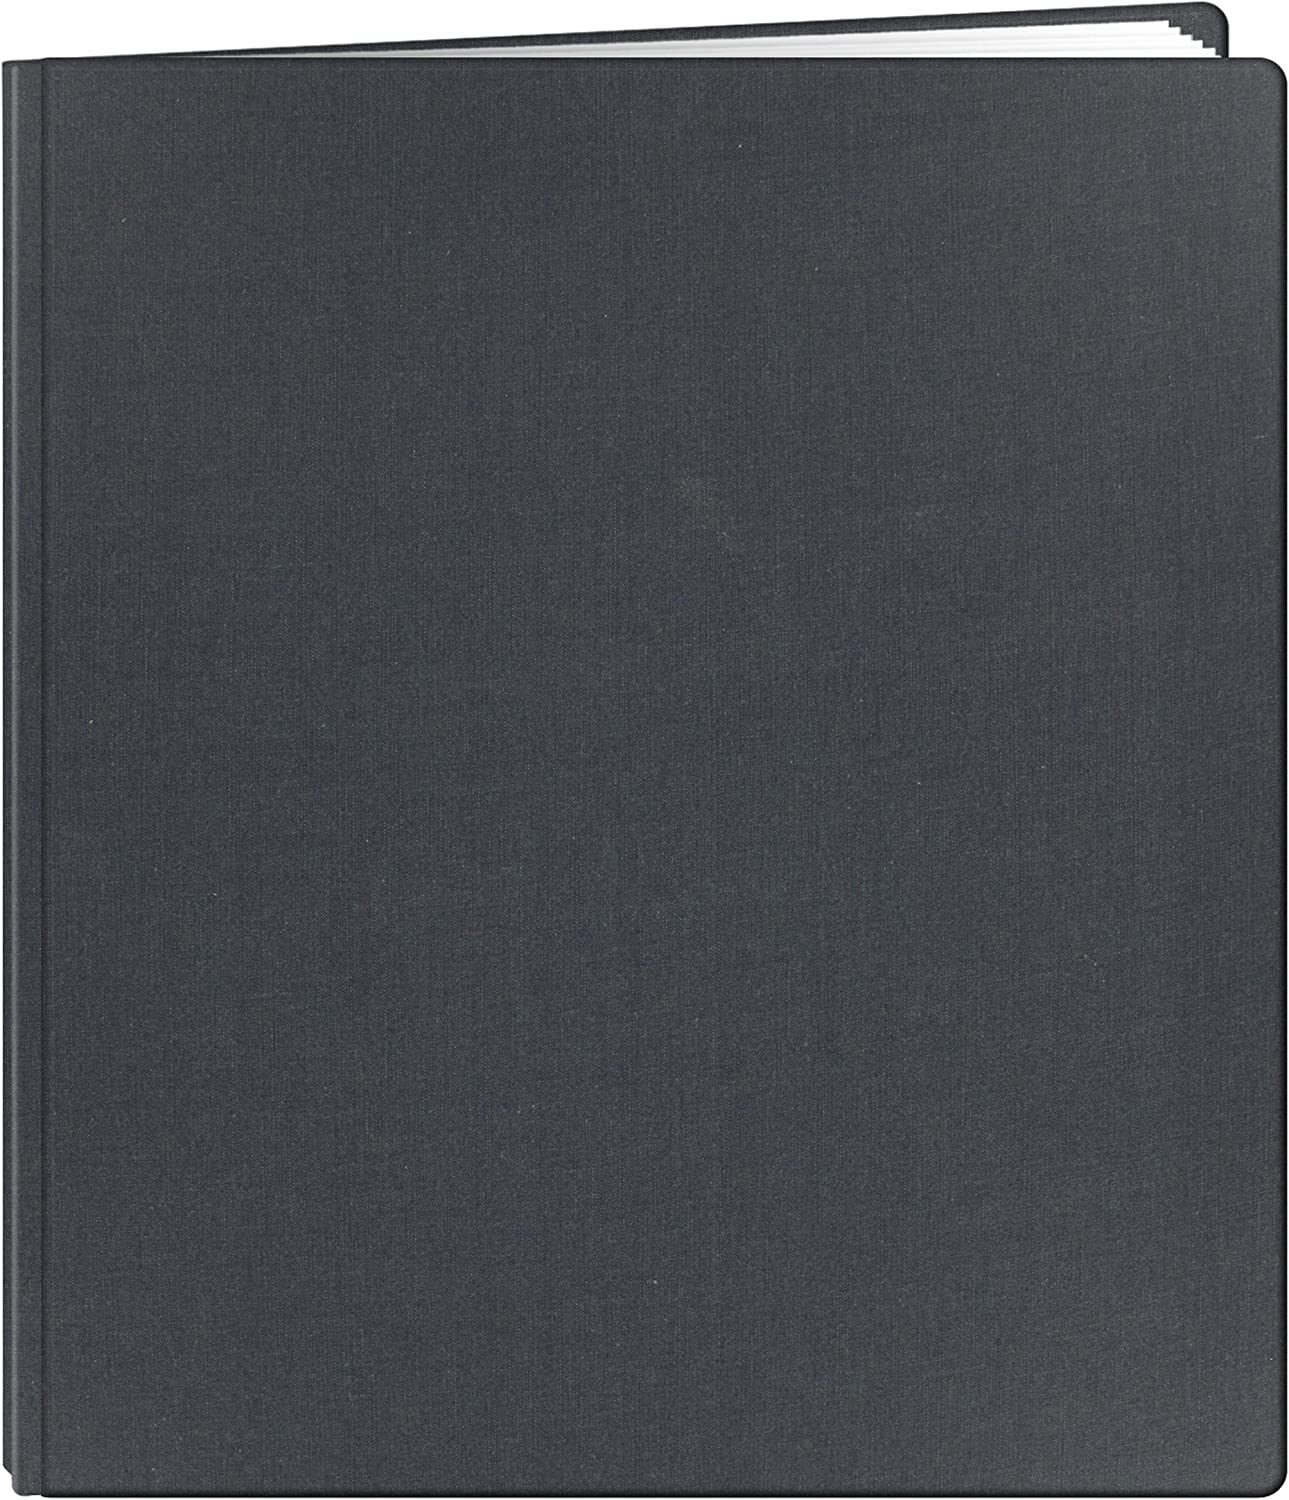 Black Pioneer FTM15BK Family Treasures Deluxe 12-by-15-Inch Memory Book with Fabric Cover